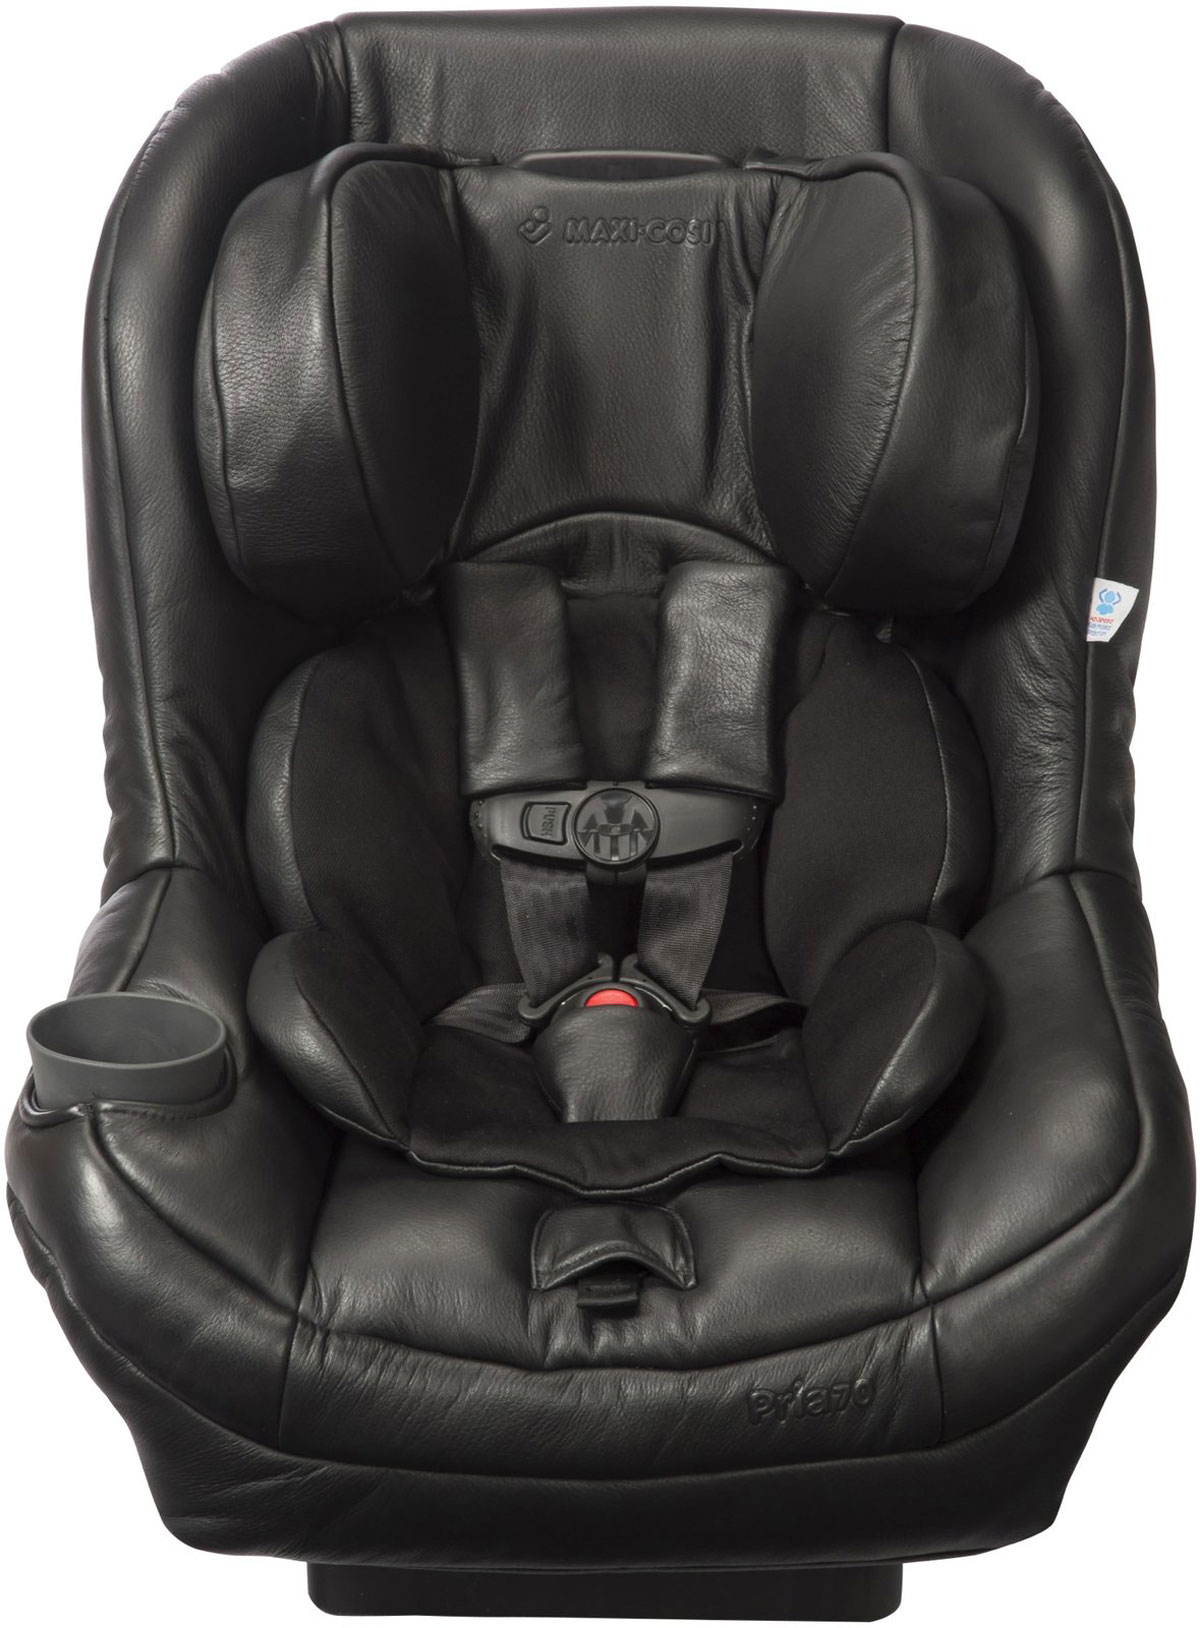 Baby Toddler Seat Maxi Cosi Limited Edition Pria 70 Leather Car Seat